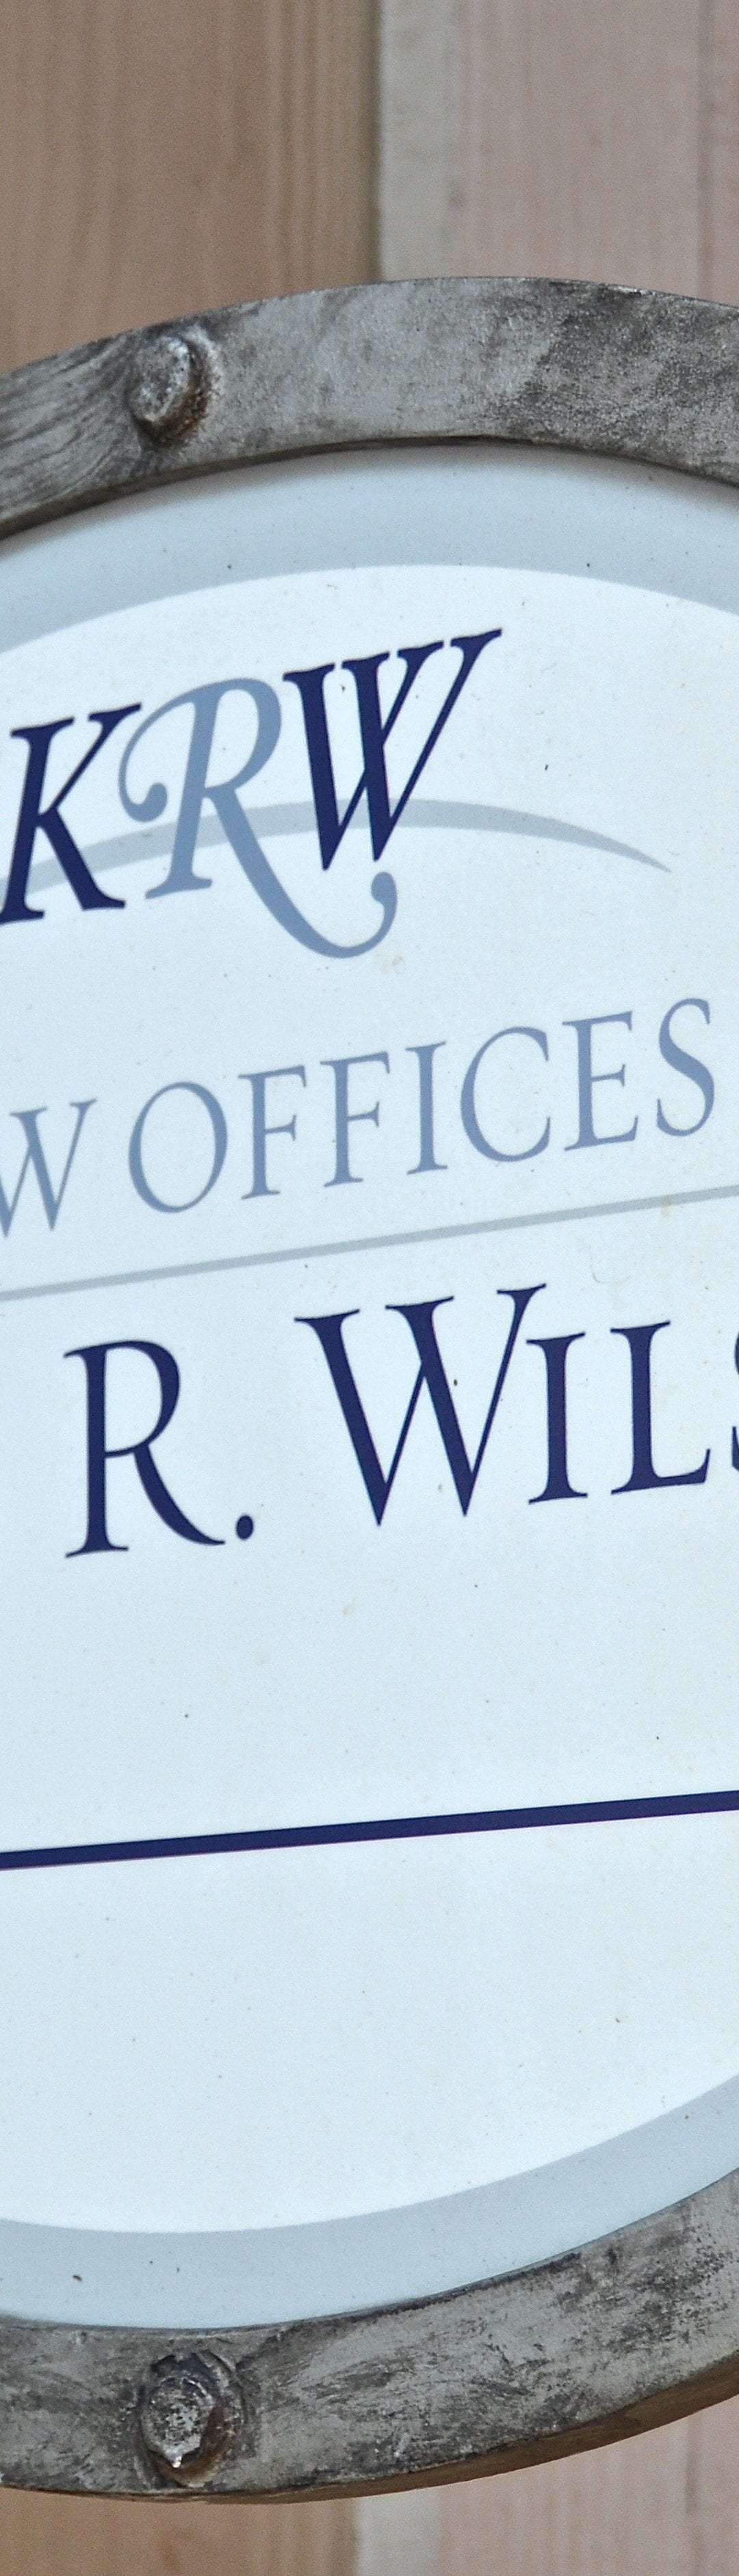 Law Office of Kevin R. Wilson